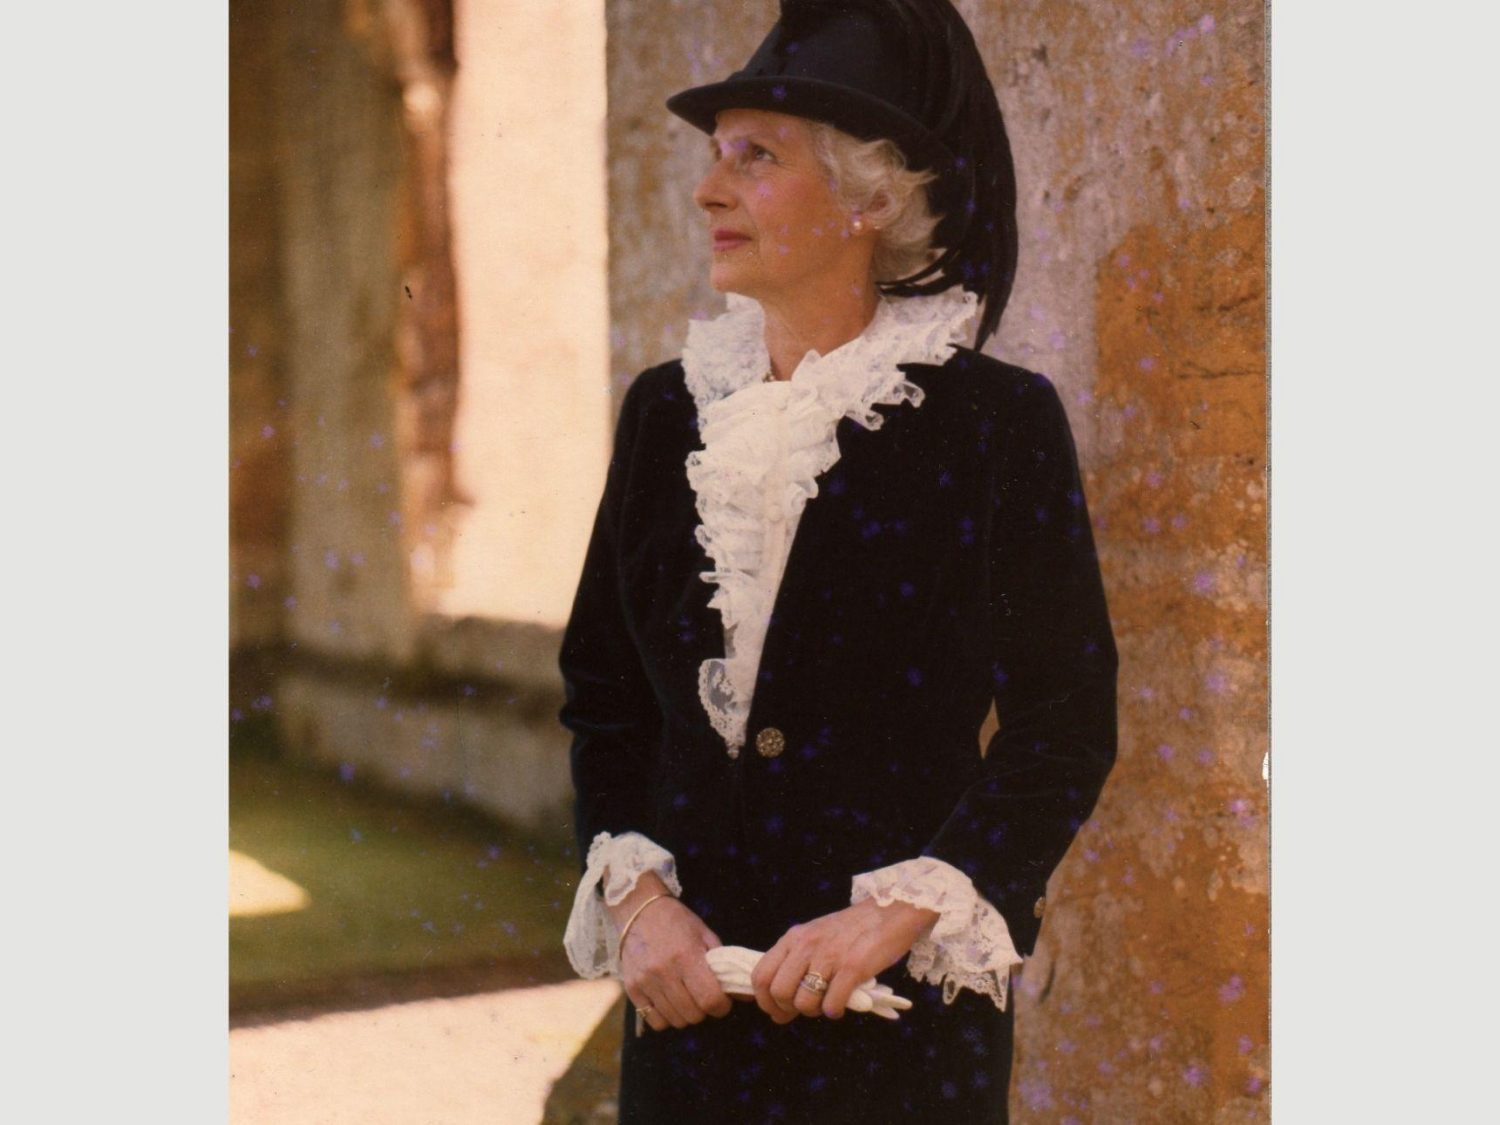 Mary Dent-Brocklehurst, High Sheriff of Gloucestershire at Sudeley